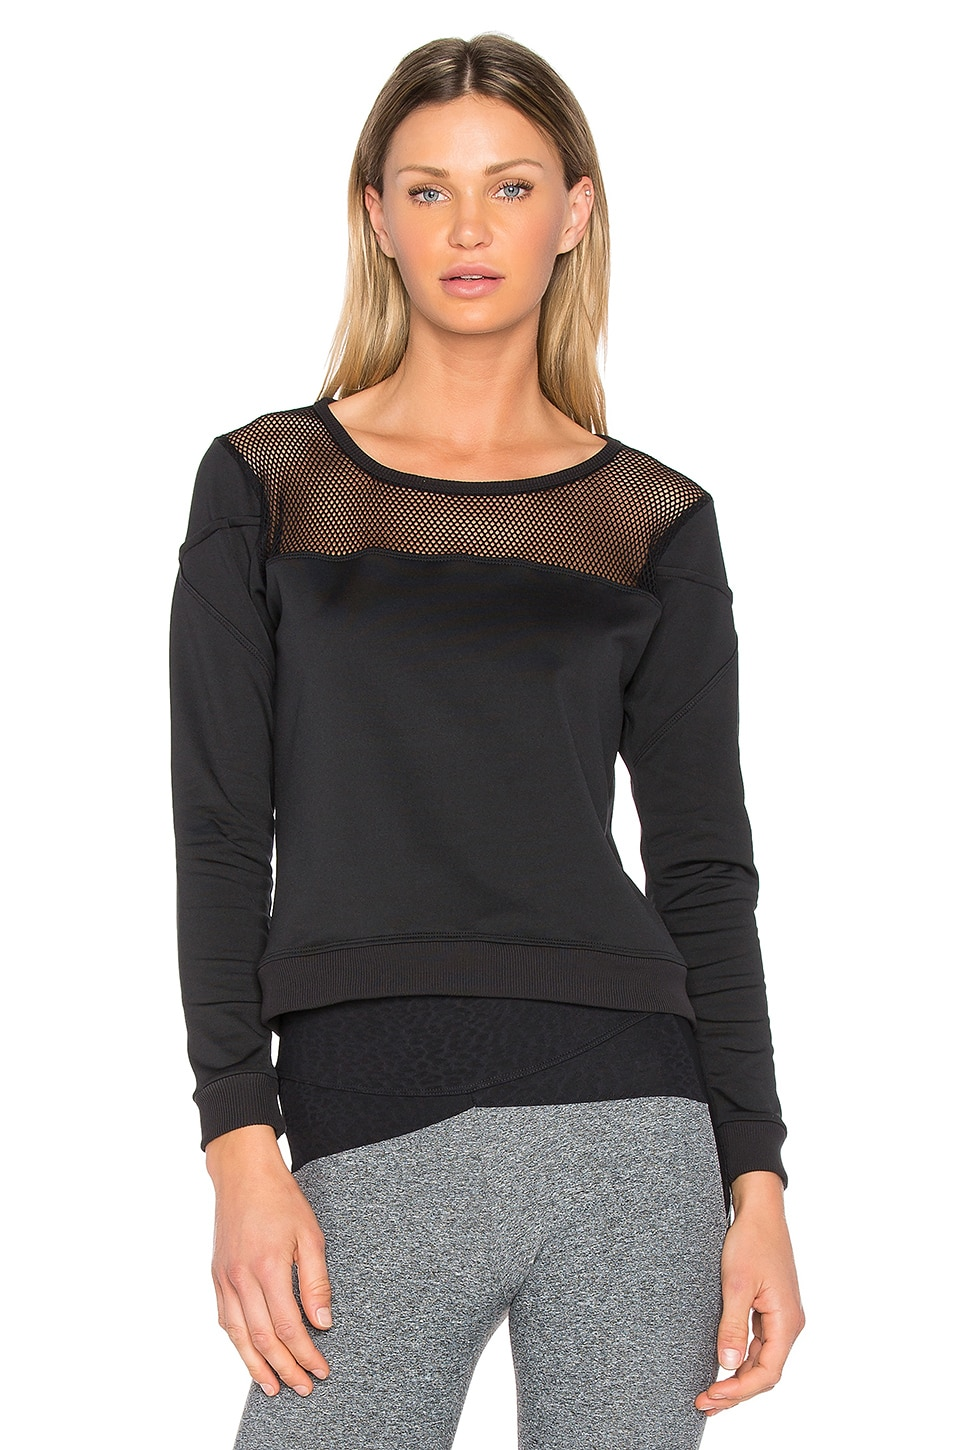 Mesh Panel Sweatshirt by Track & Bliss